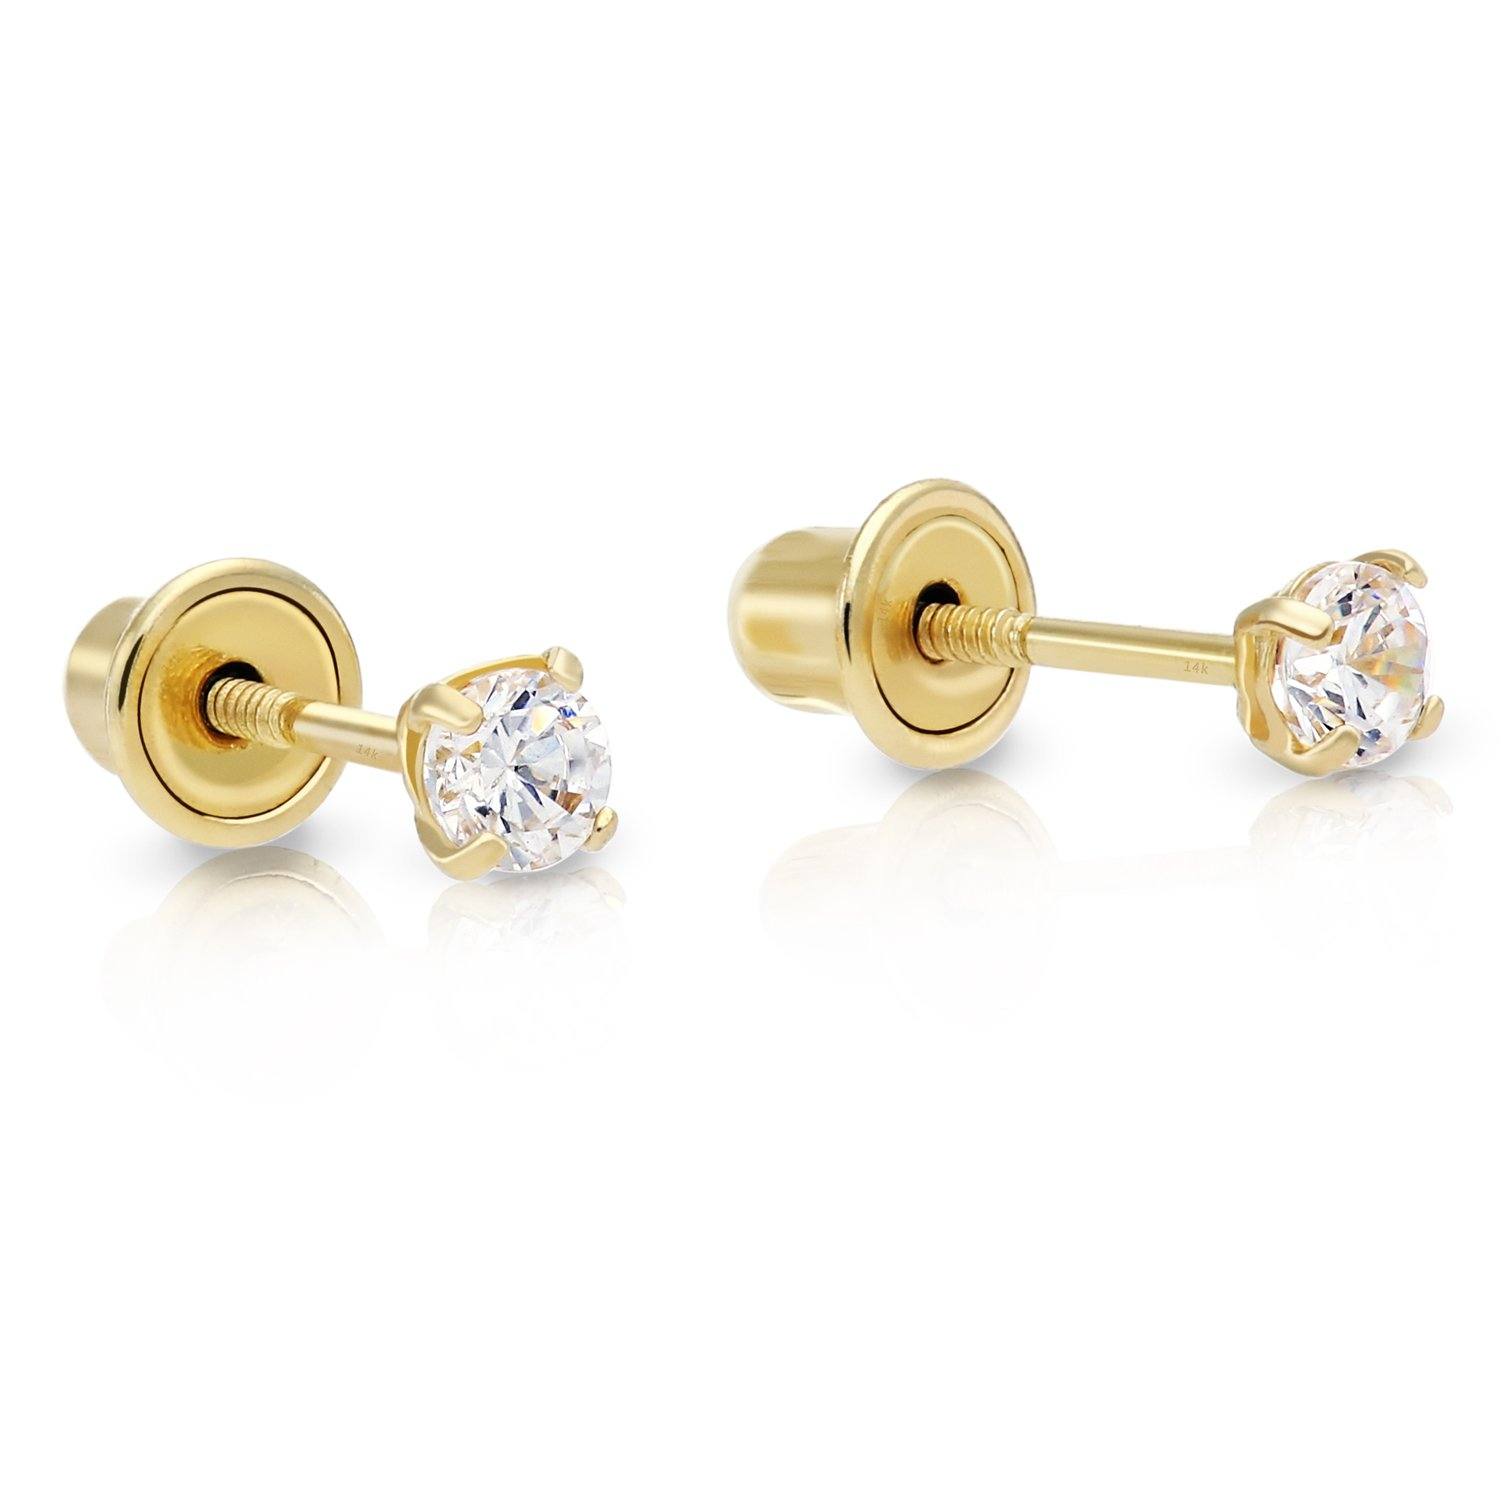 14k Yellow Gold Cubic Zirconia Stud Earrings with Screw Backs